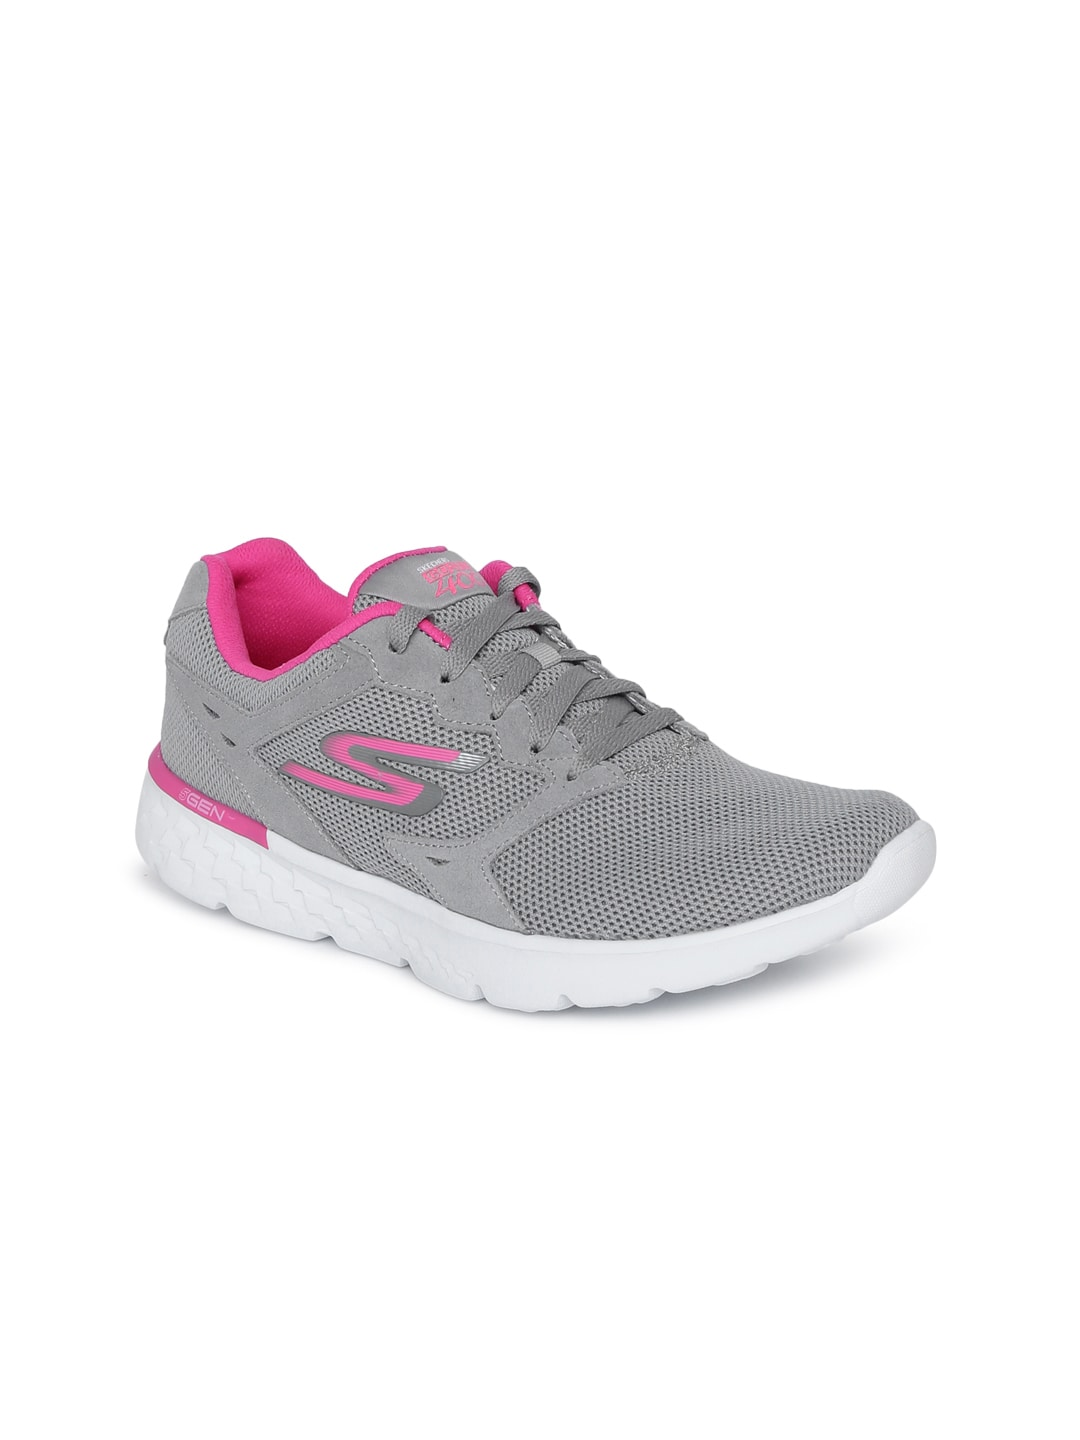 Athletic Shoes Clothing, Shoes & Accessories Romantic Skechers You Slip On Ladies Trainers Shoes Womens Footwear